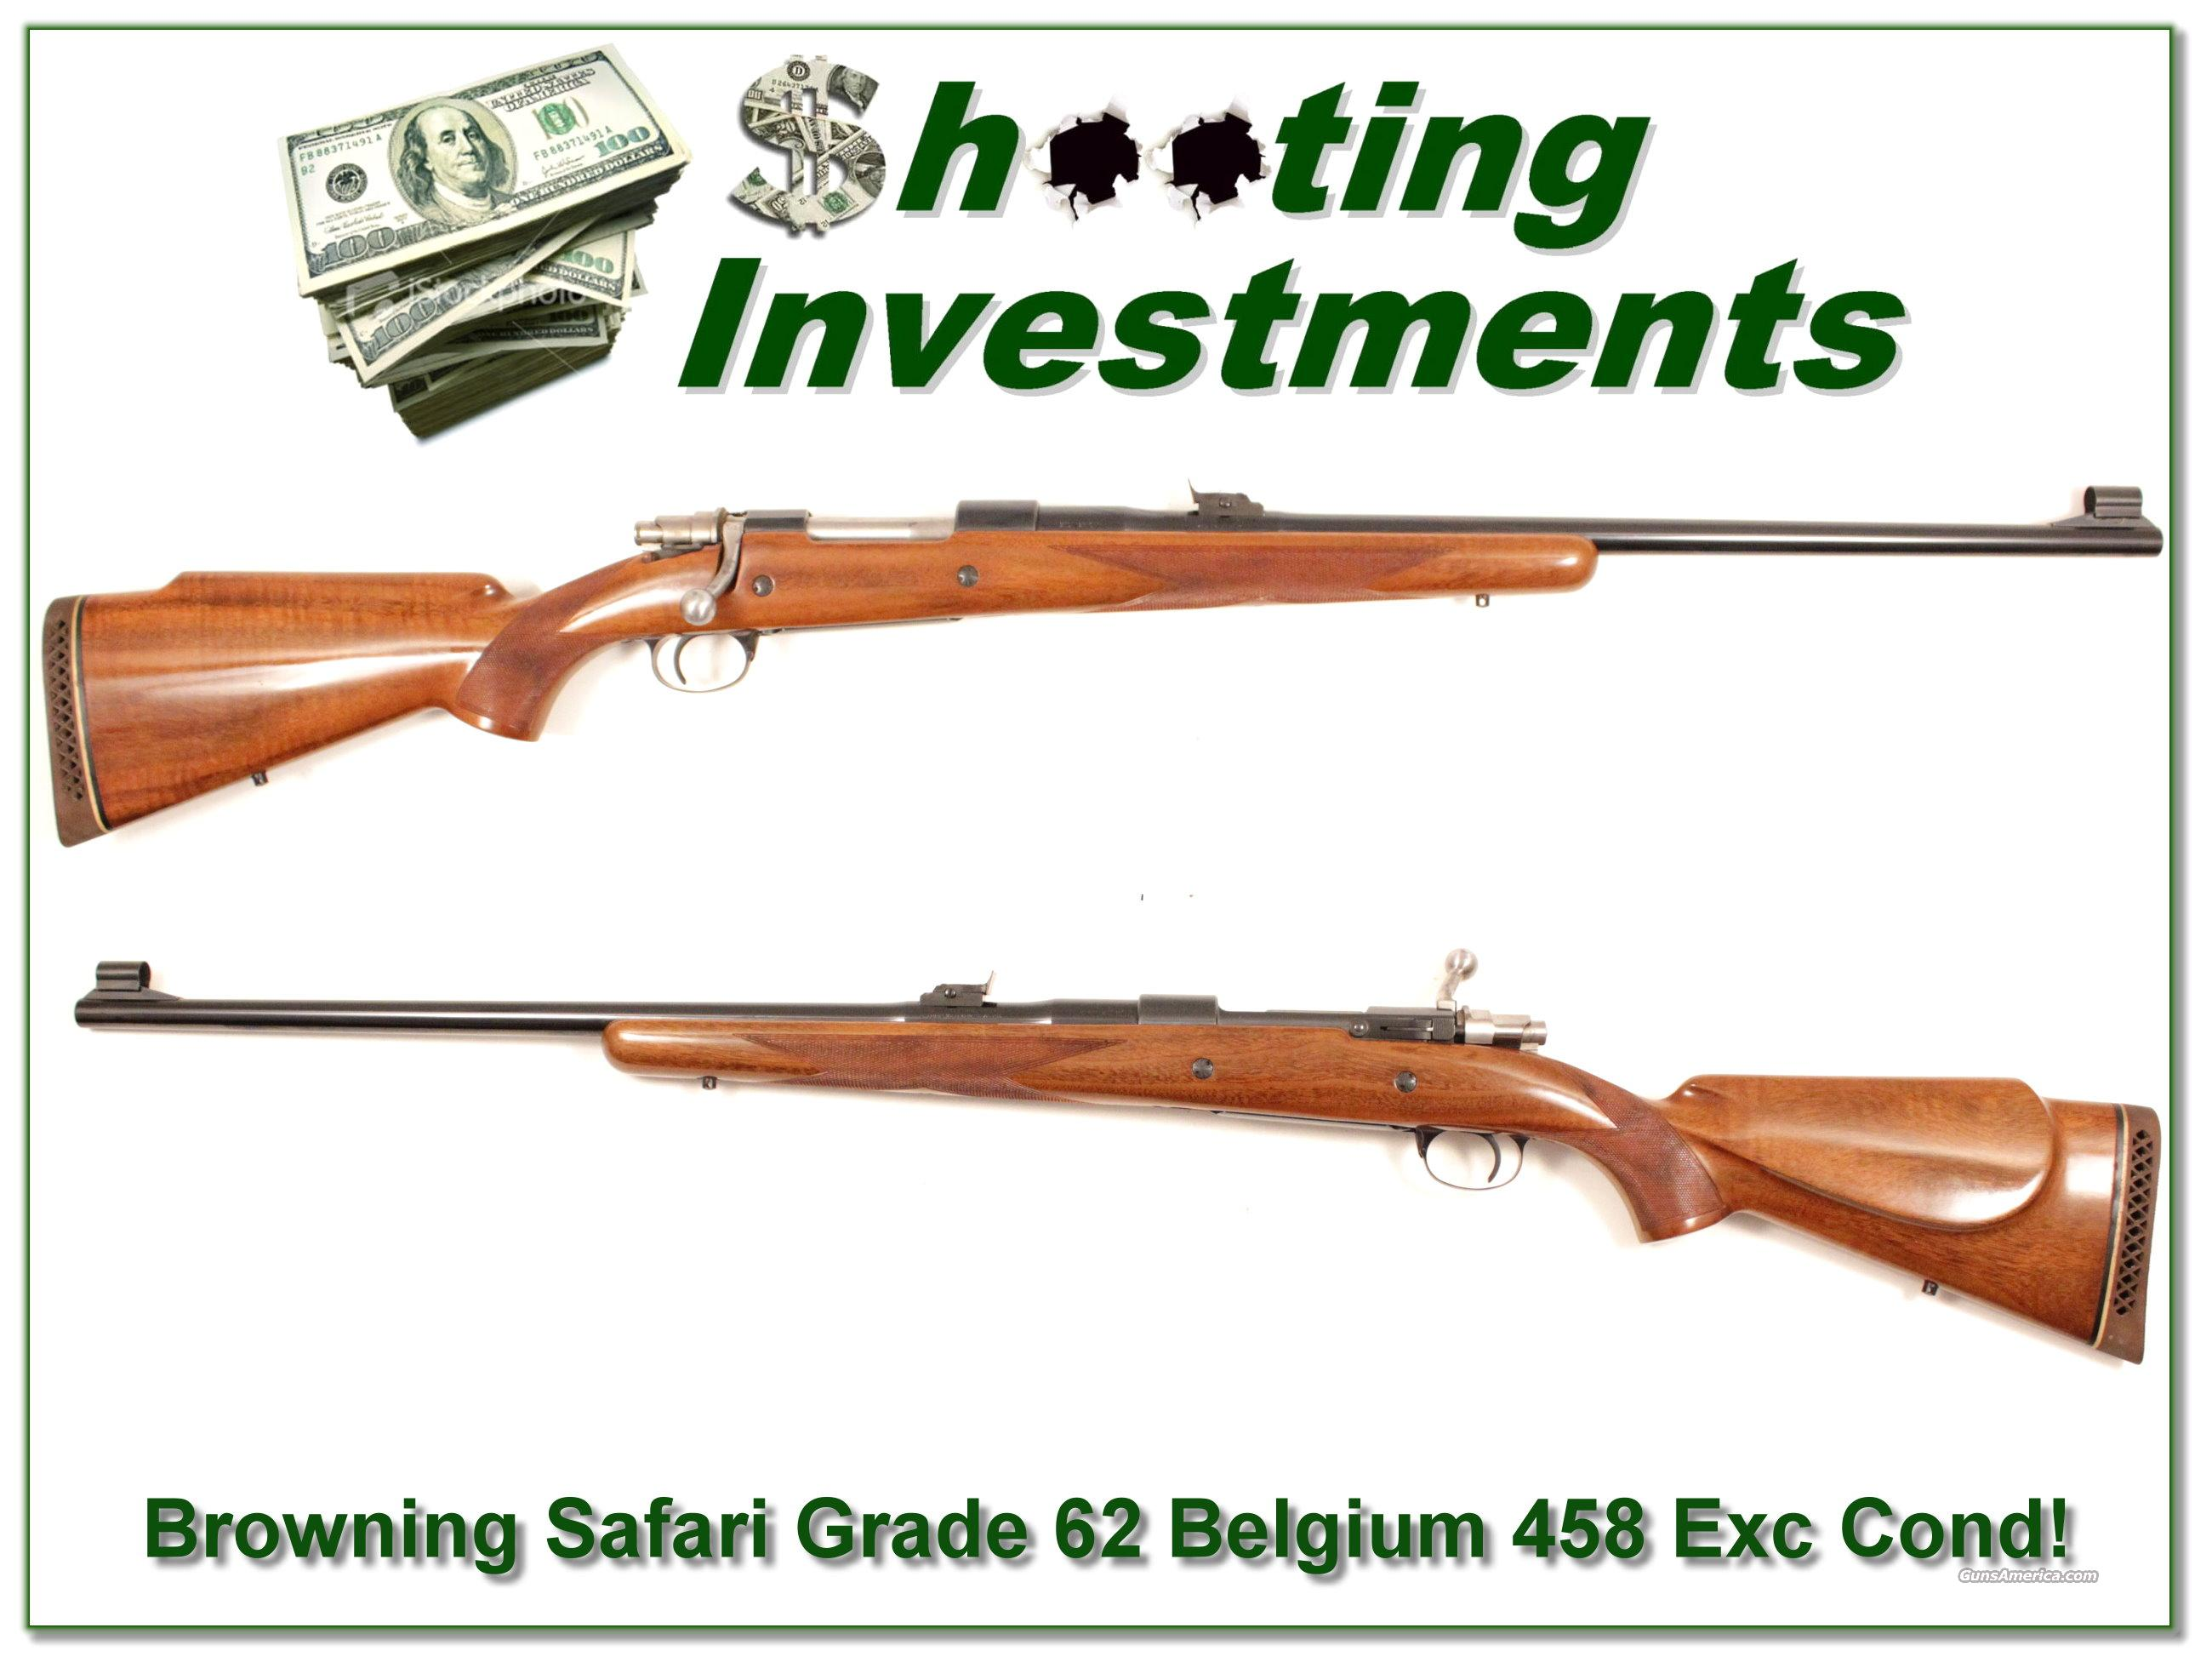 Browning Safari Grade 62 Belgium 458 Exc Cond!  Guns > Rifles > Browning Rifles > Bolt Action > Hunting > Blue